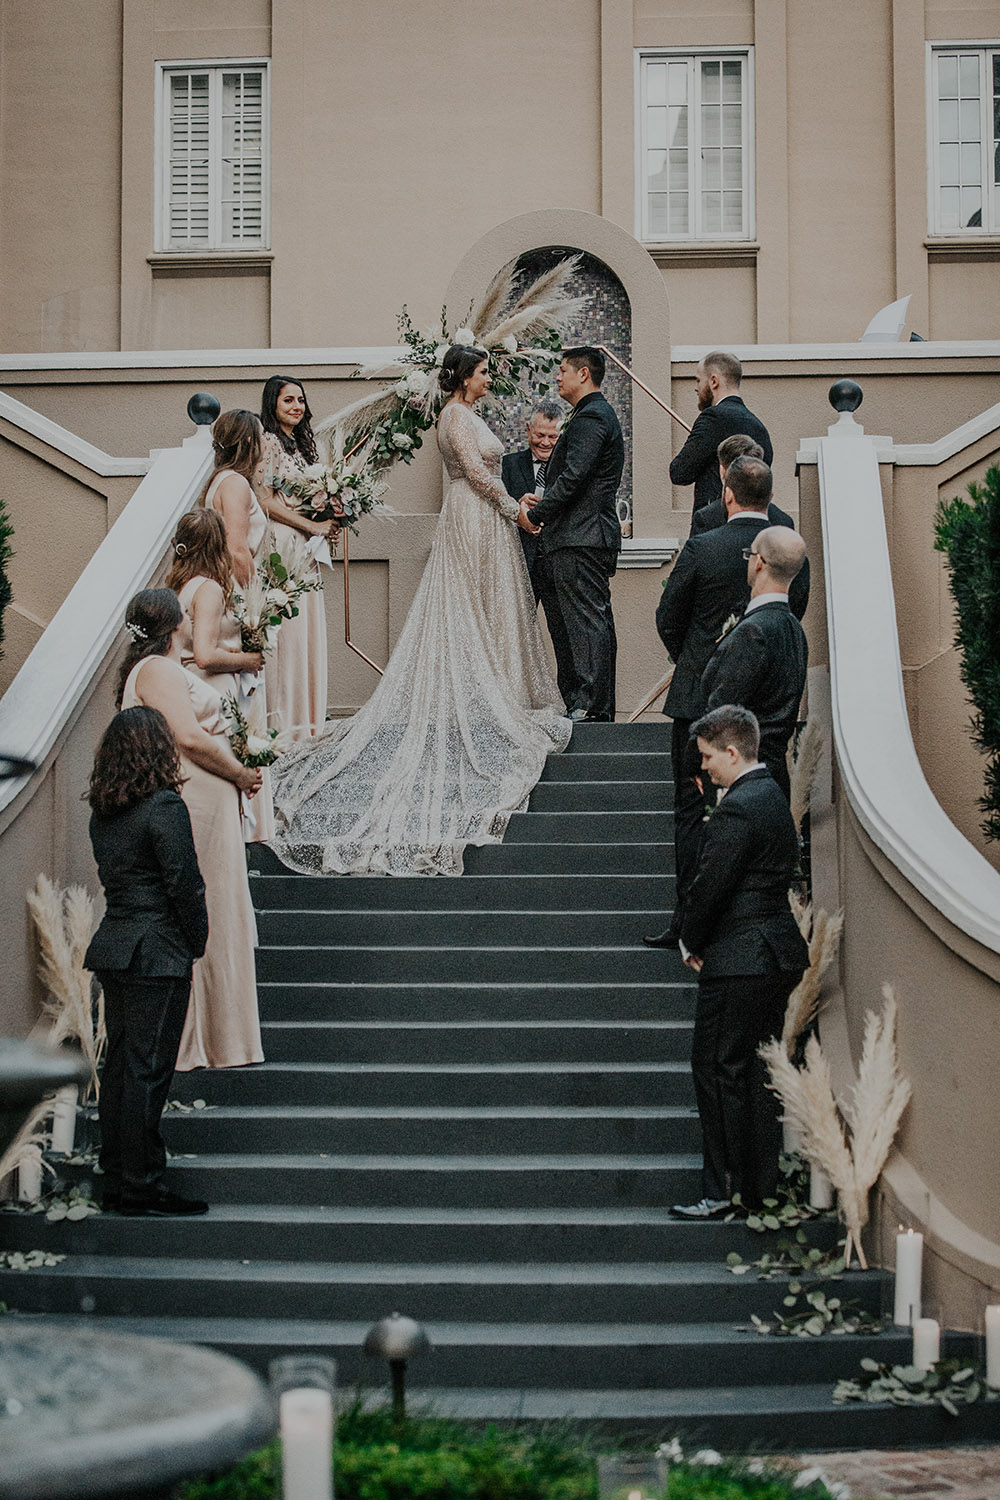 The wedding ceremony on the steps of the W French Quarter courtyard. Photo: Sara Ann Green Photography